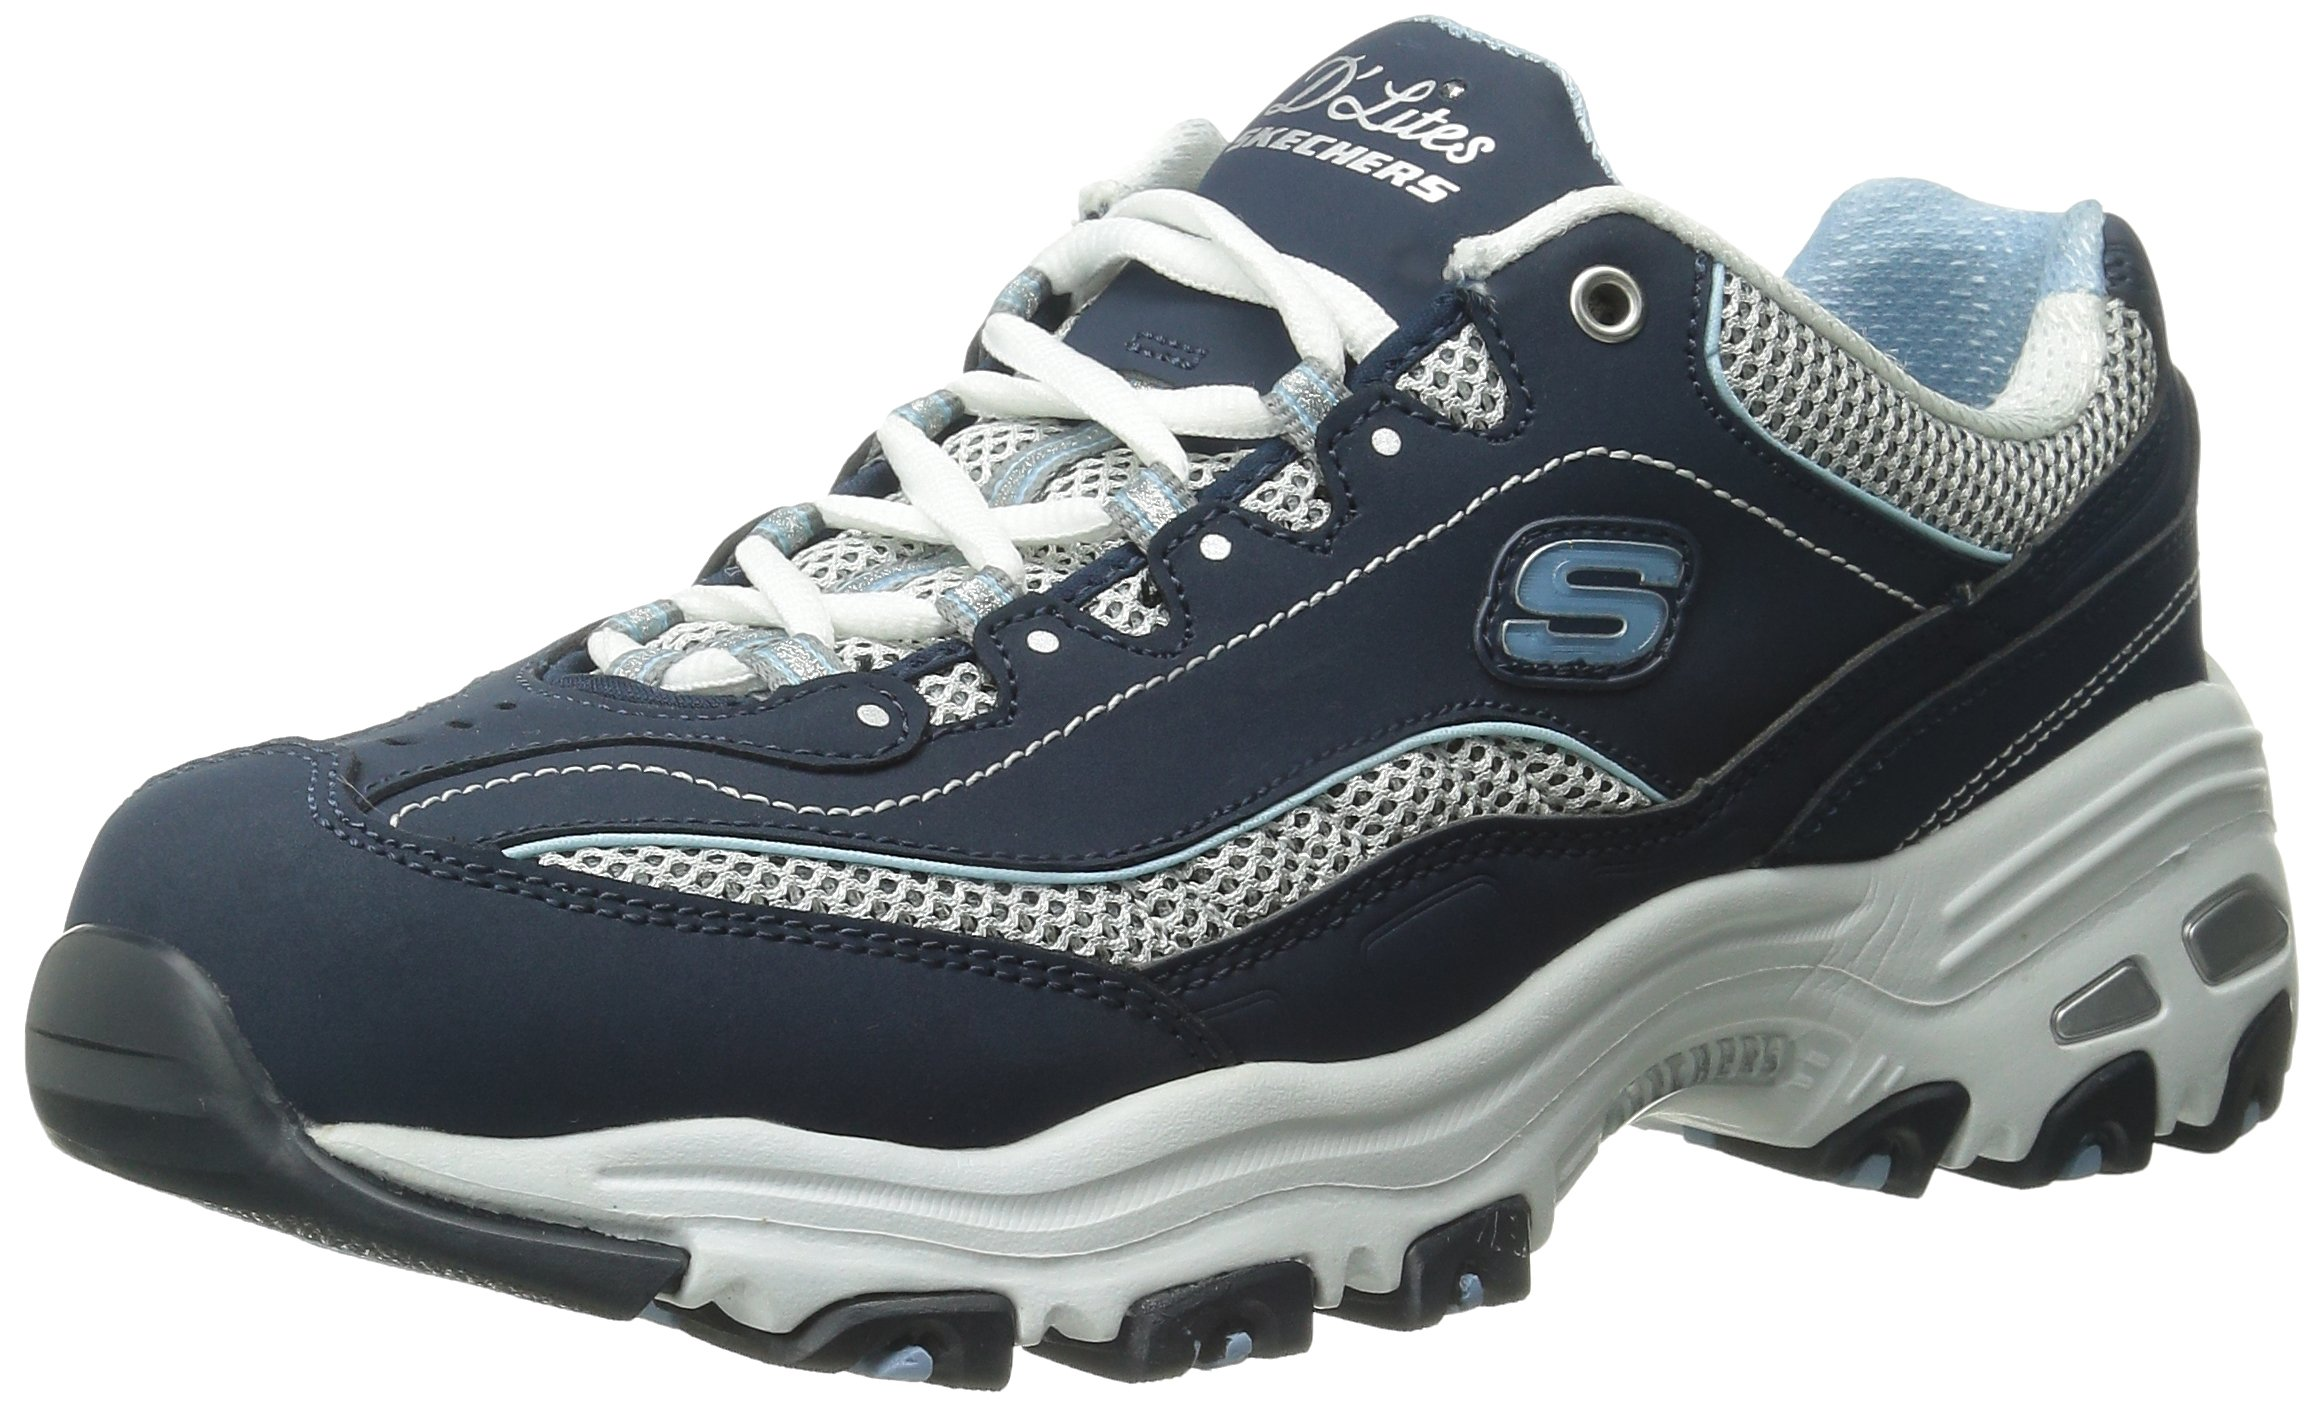 Skechers Sport Women's D'Lites Memory Foam Lace-up Sneaker,Navy/White,9 M US